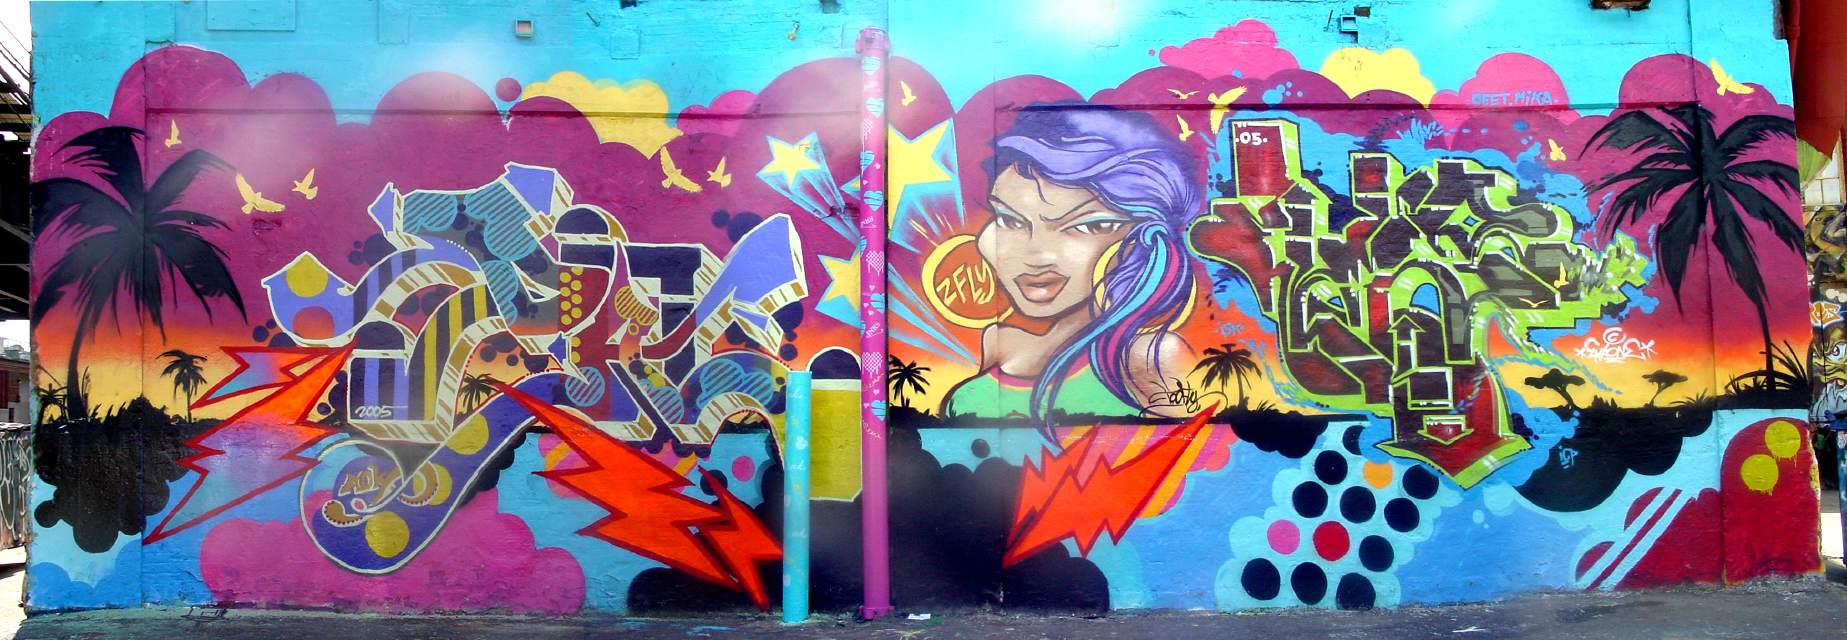 Queen Andrea, Inks, Ema, Toofly 2005, at 5 Pointz